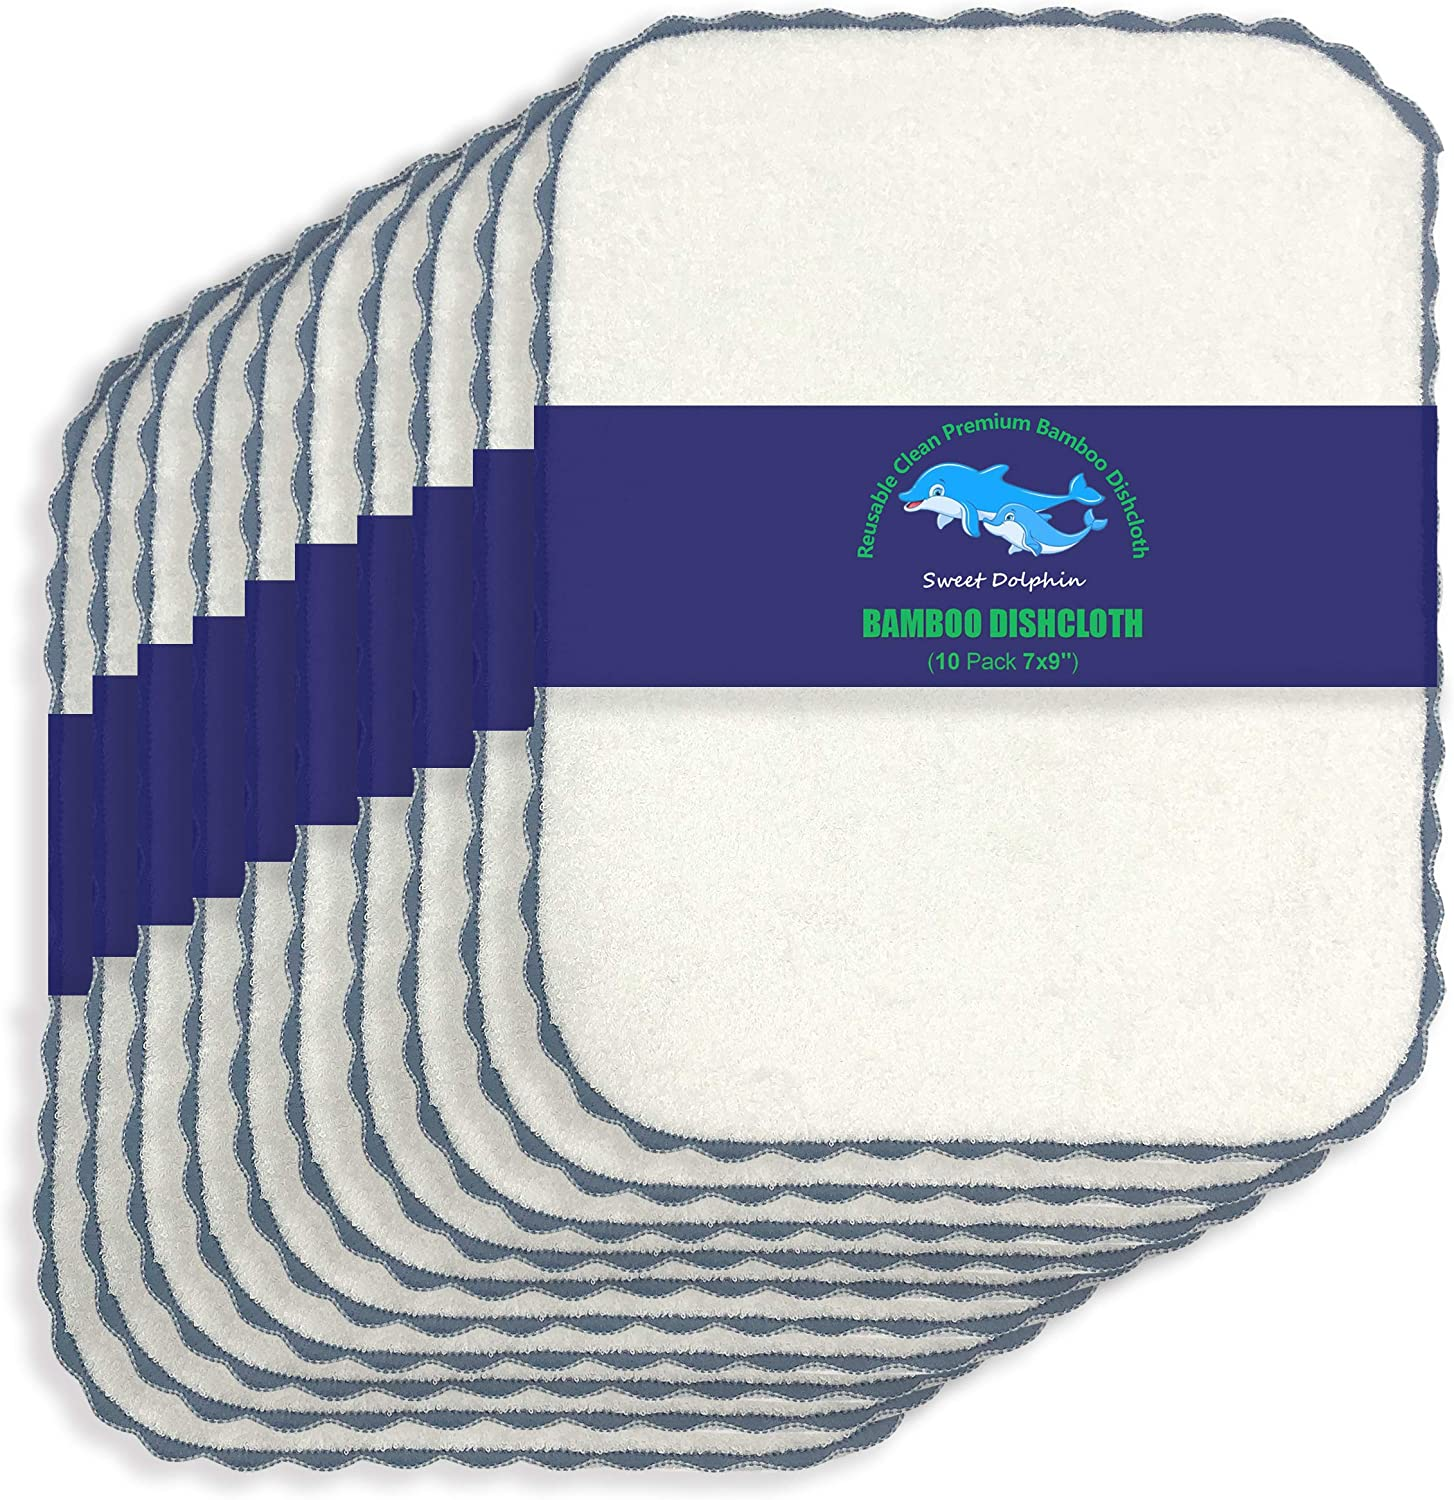 10 Pack Bamboo Kitchen Dishcloths - No Max 47% latest OFF Reusabl Eco-Friendly Odor